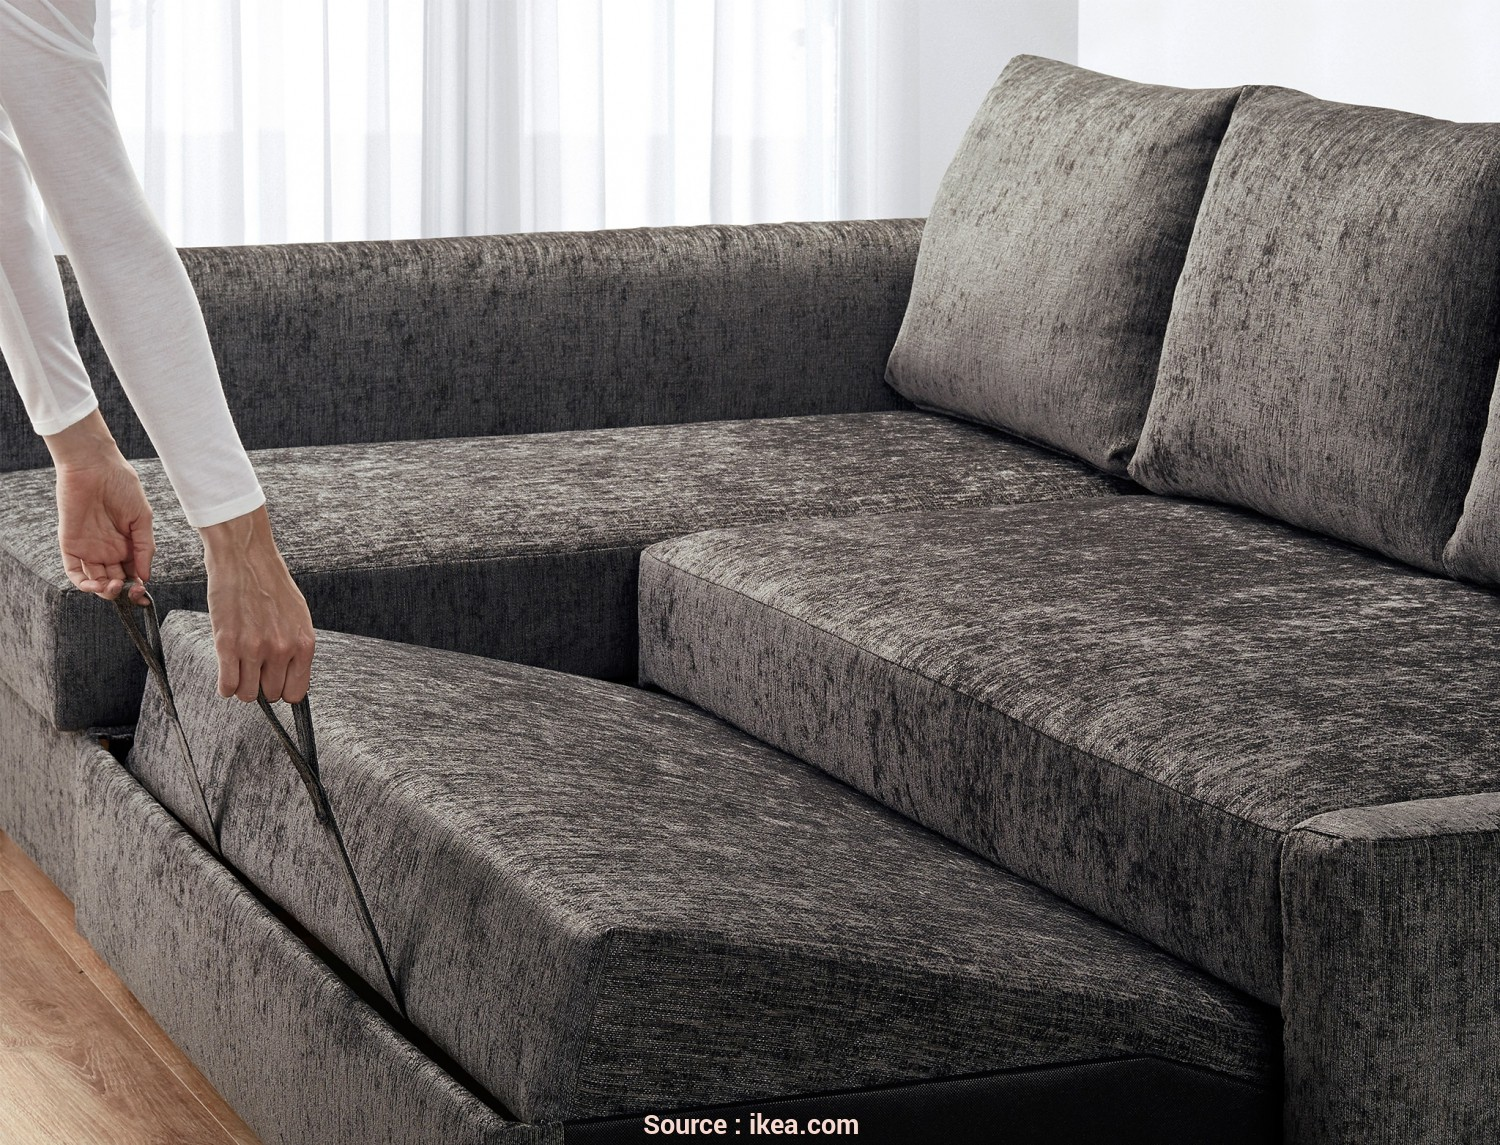 Ikea Asarum Sofa Review, Affascinante Sofa Beds & Chair Beds, IKEA Ireland, Dublin